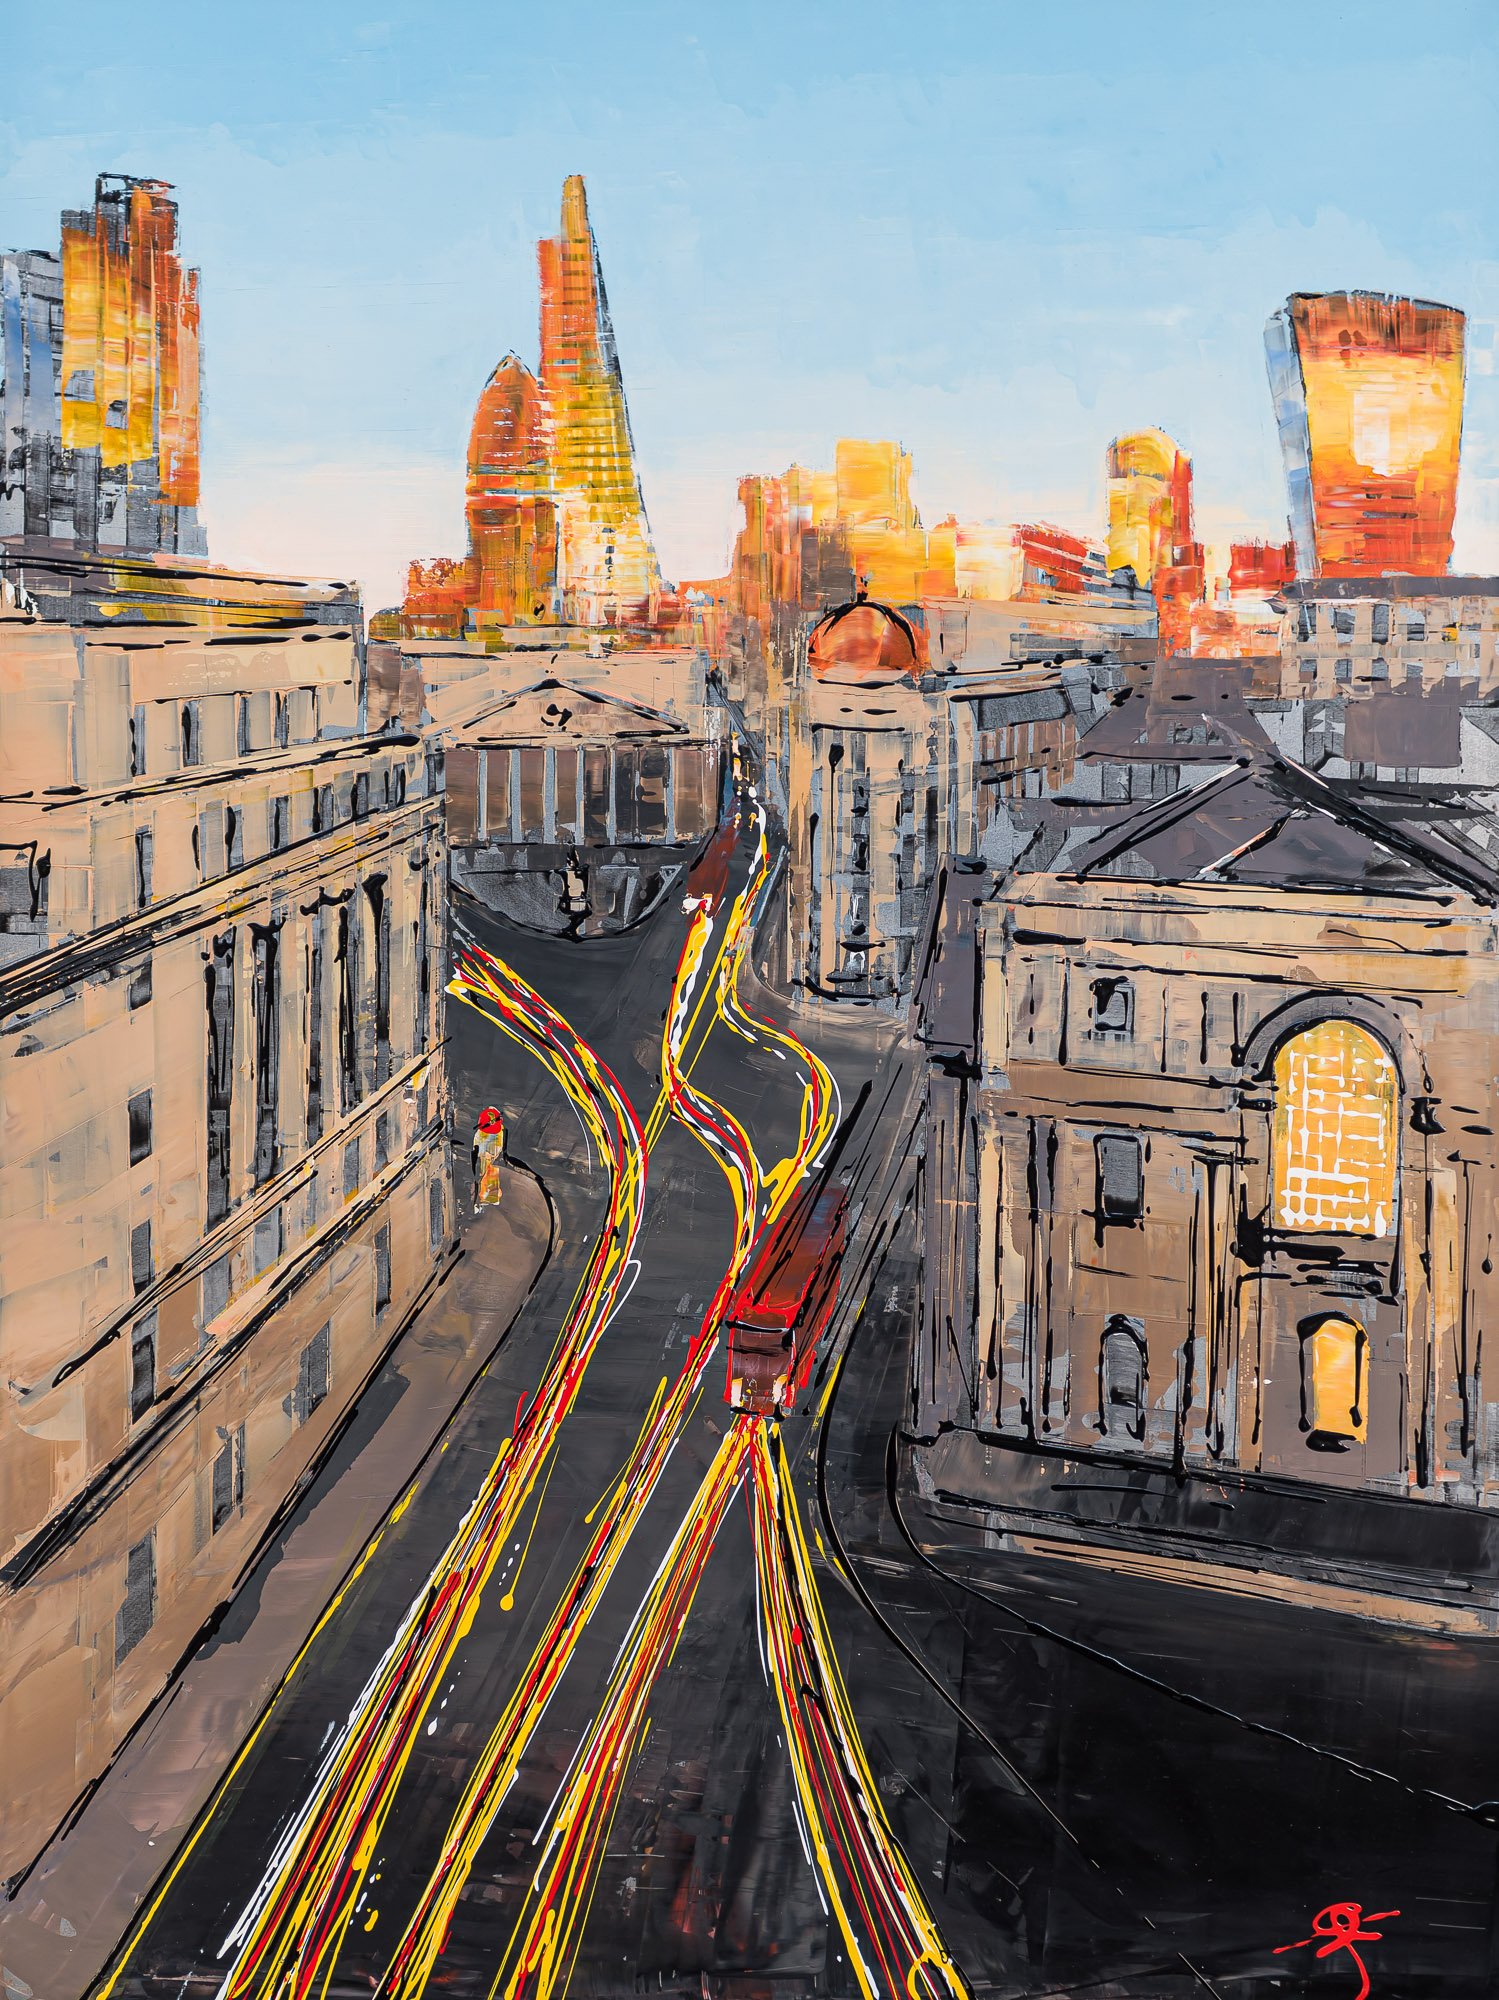 Into the City by Paul Kenton, UK Contemporary Cityscape Artist, an Original City of London Painting